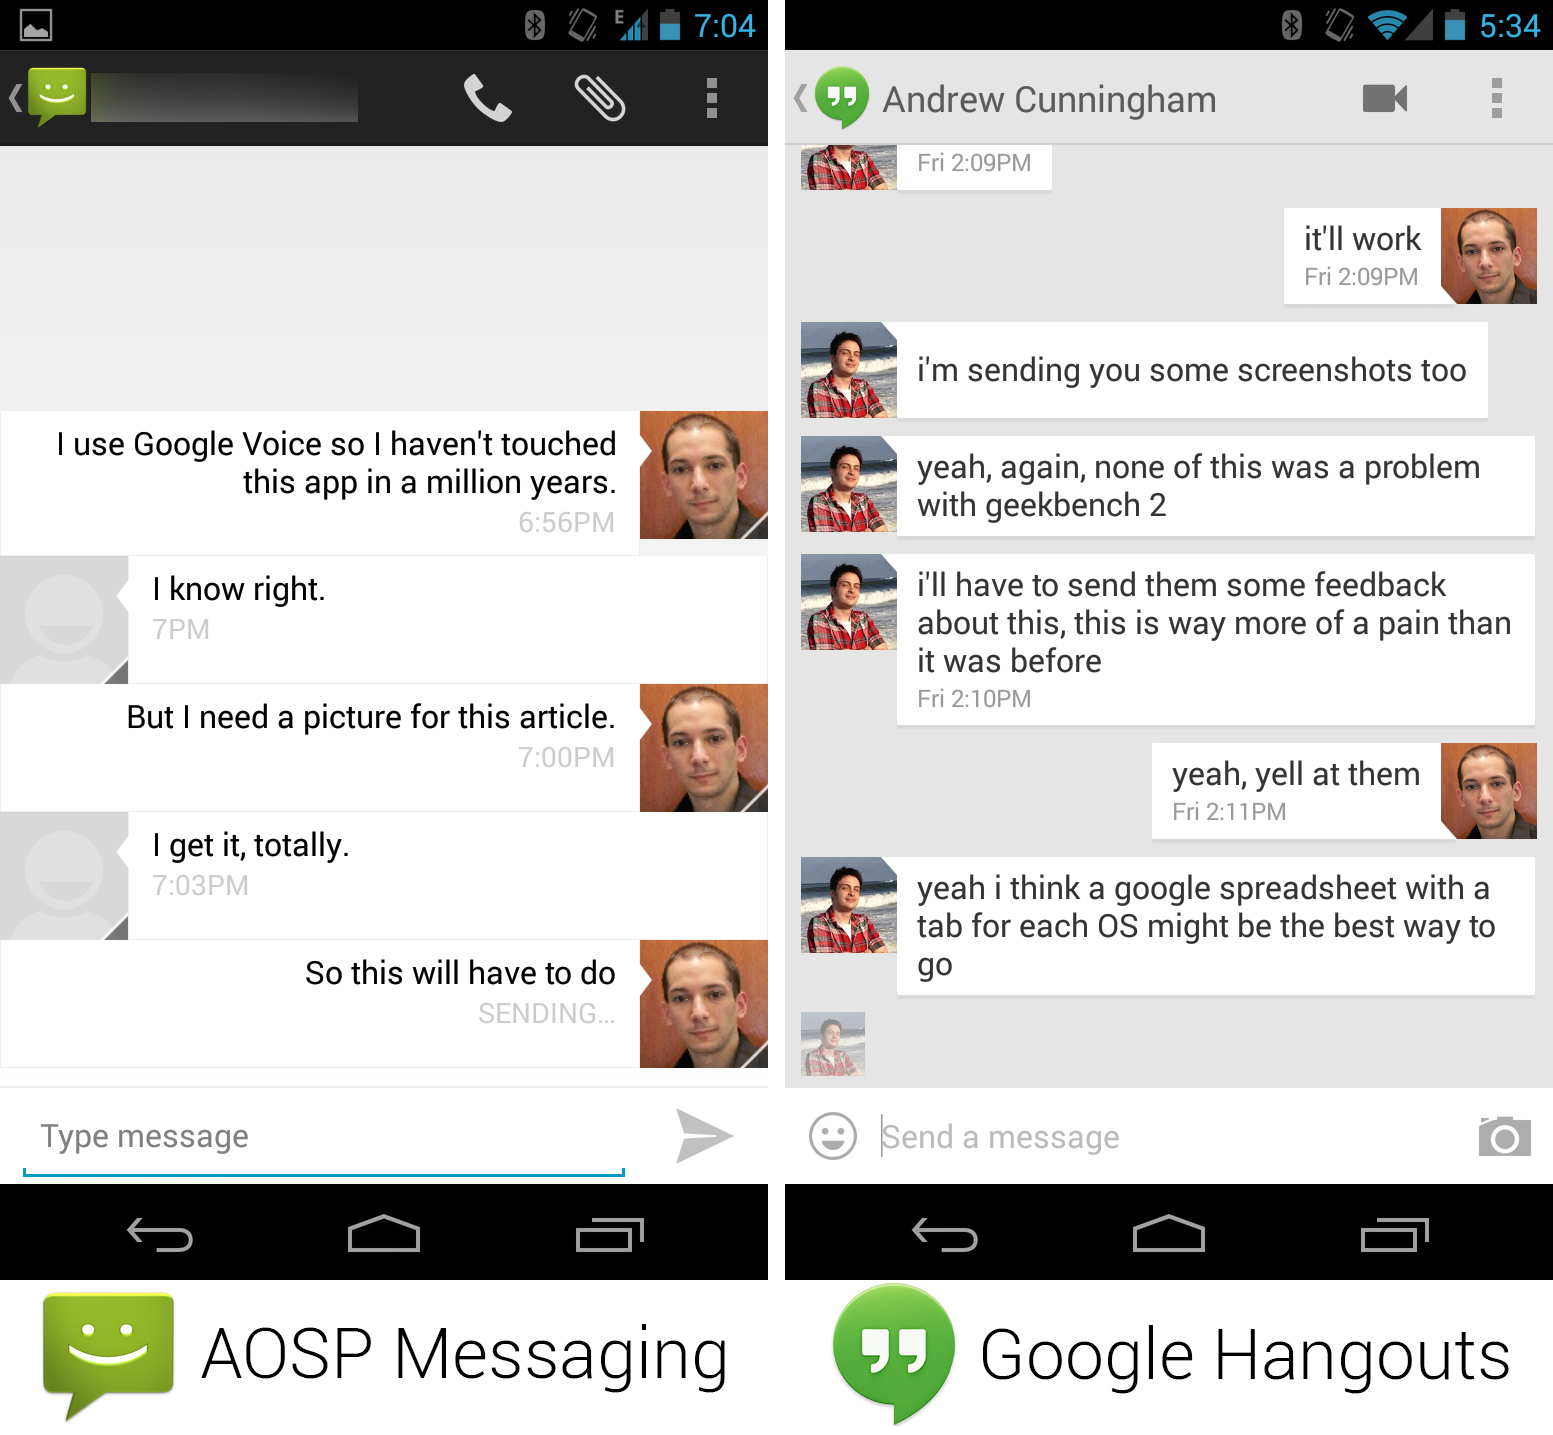 Am I the only one who thinks the Hangouts app is incredibly ugly